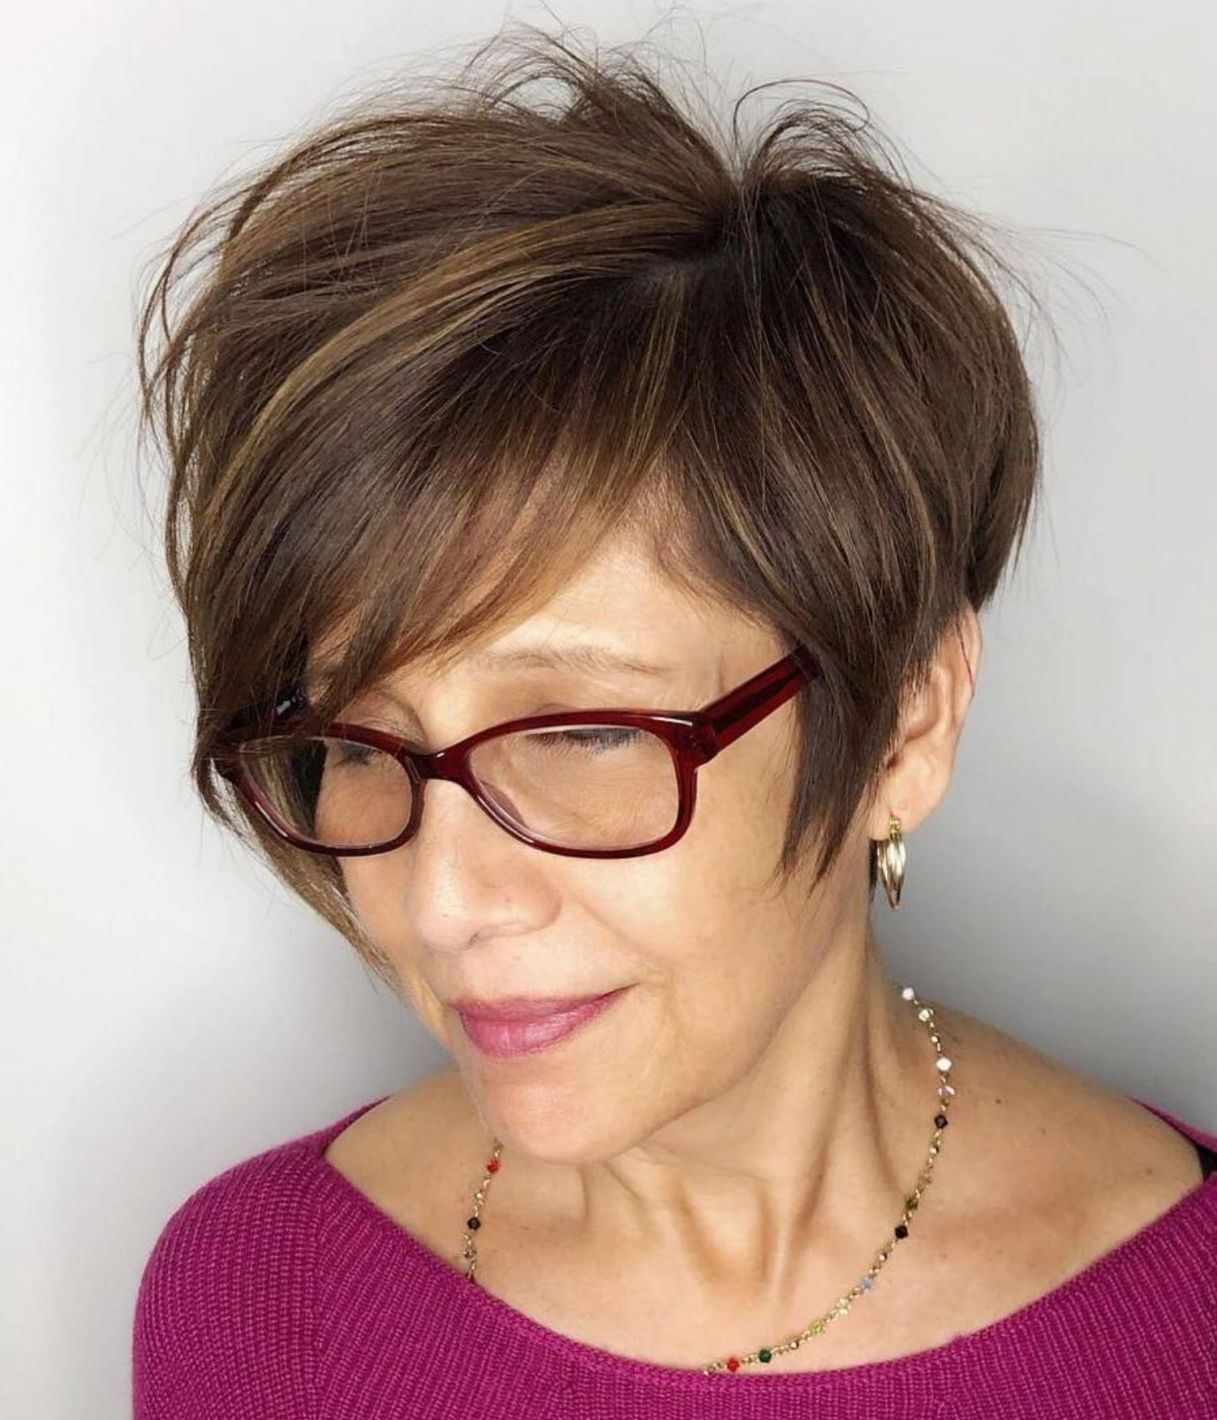 Trendy Short Haircut Styles for Women Over 50 (Updated 2021) 094844a8d1122df888e36347ad98ab87